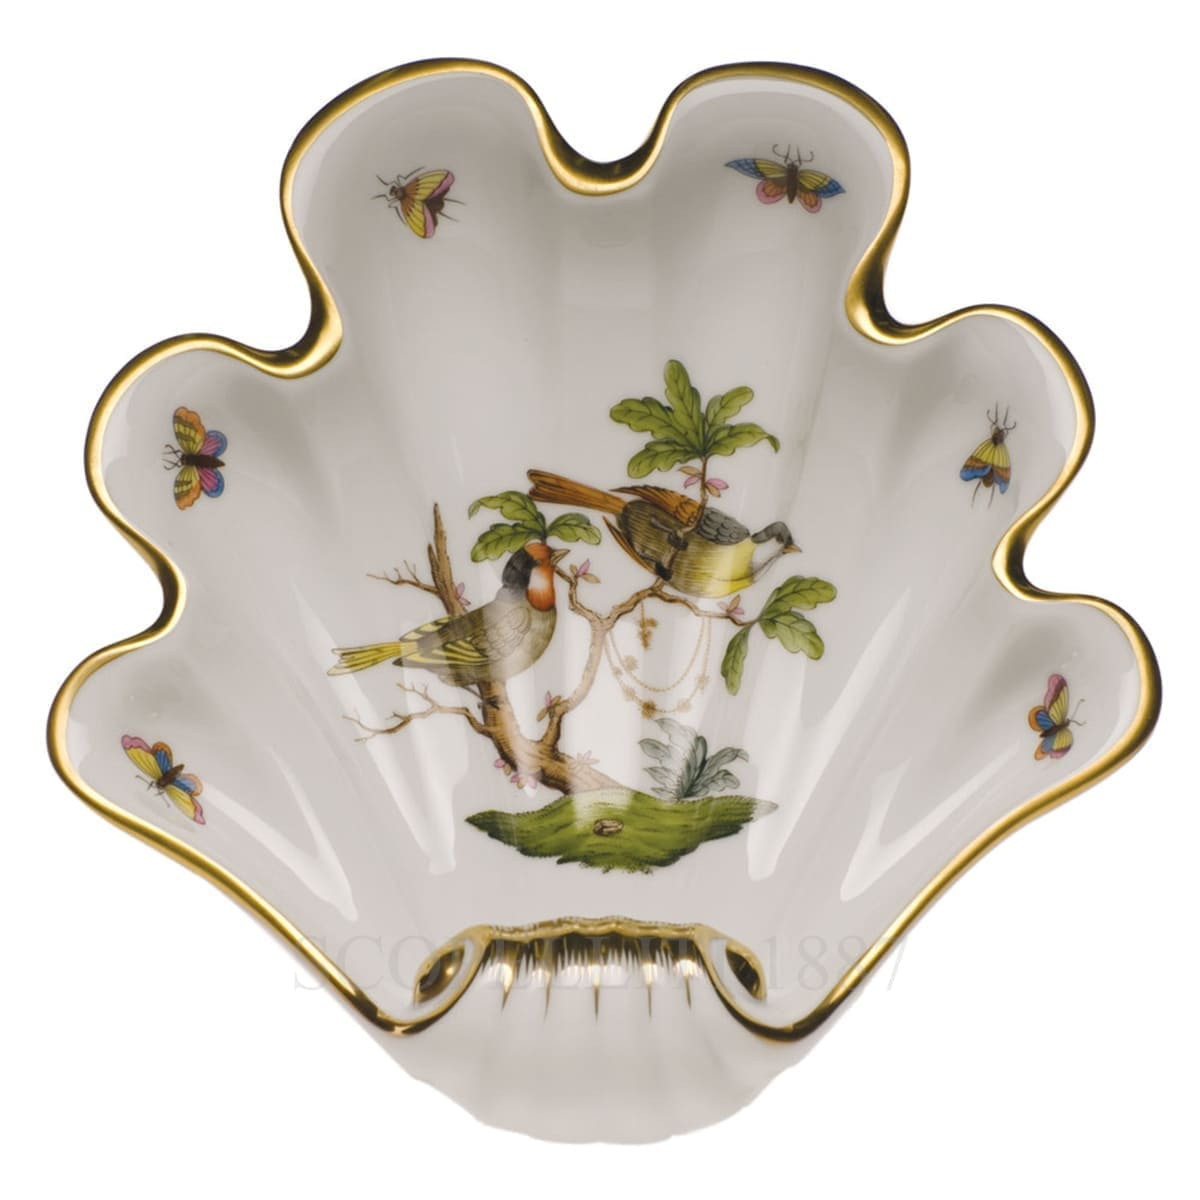 herend porcelain rothschild large shell tray